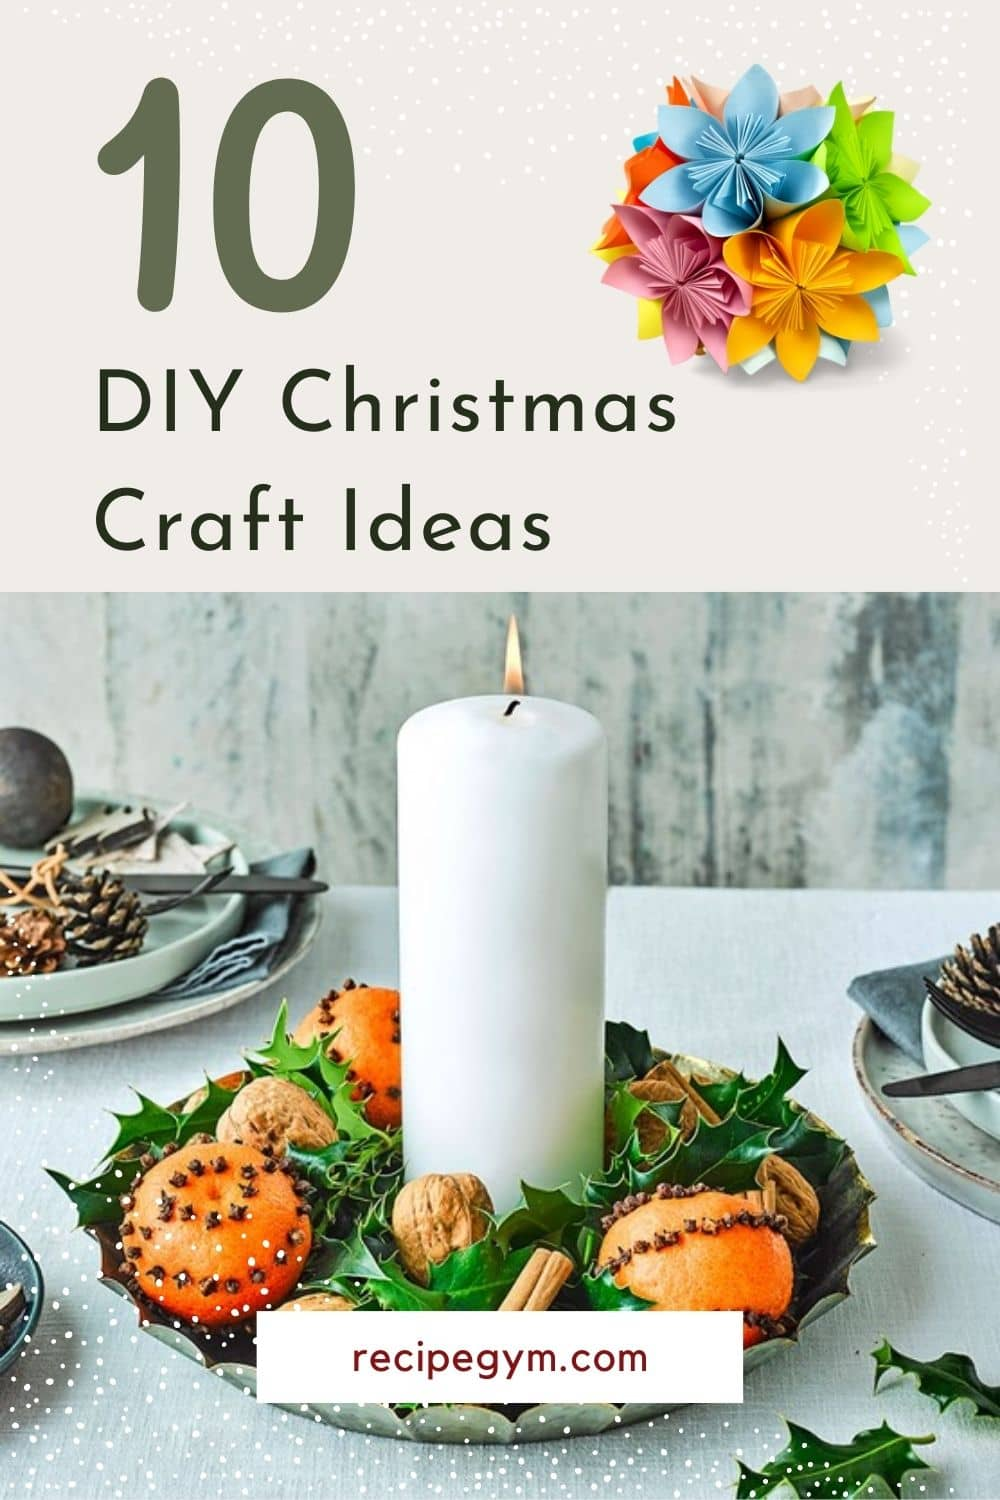 DIY Christmas Craft Ideas for Adults